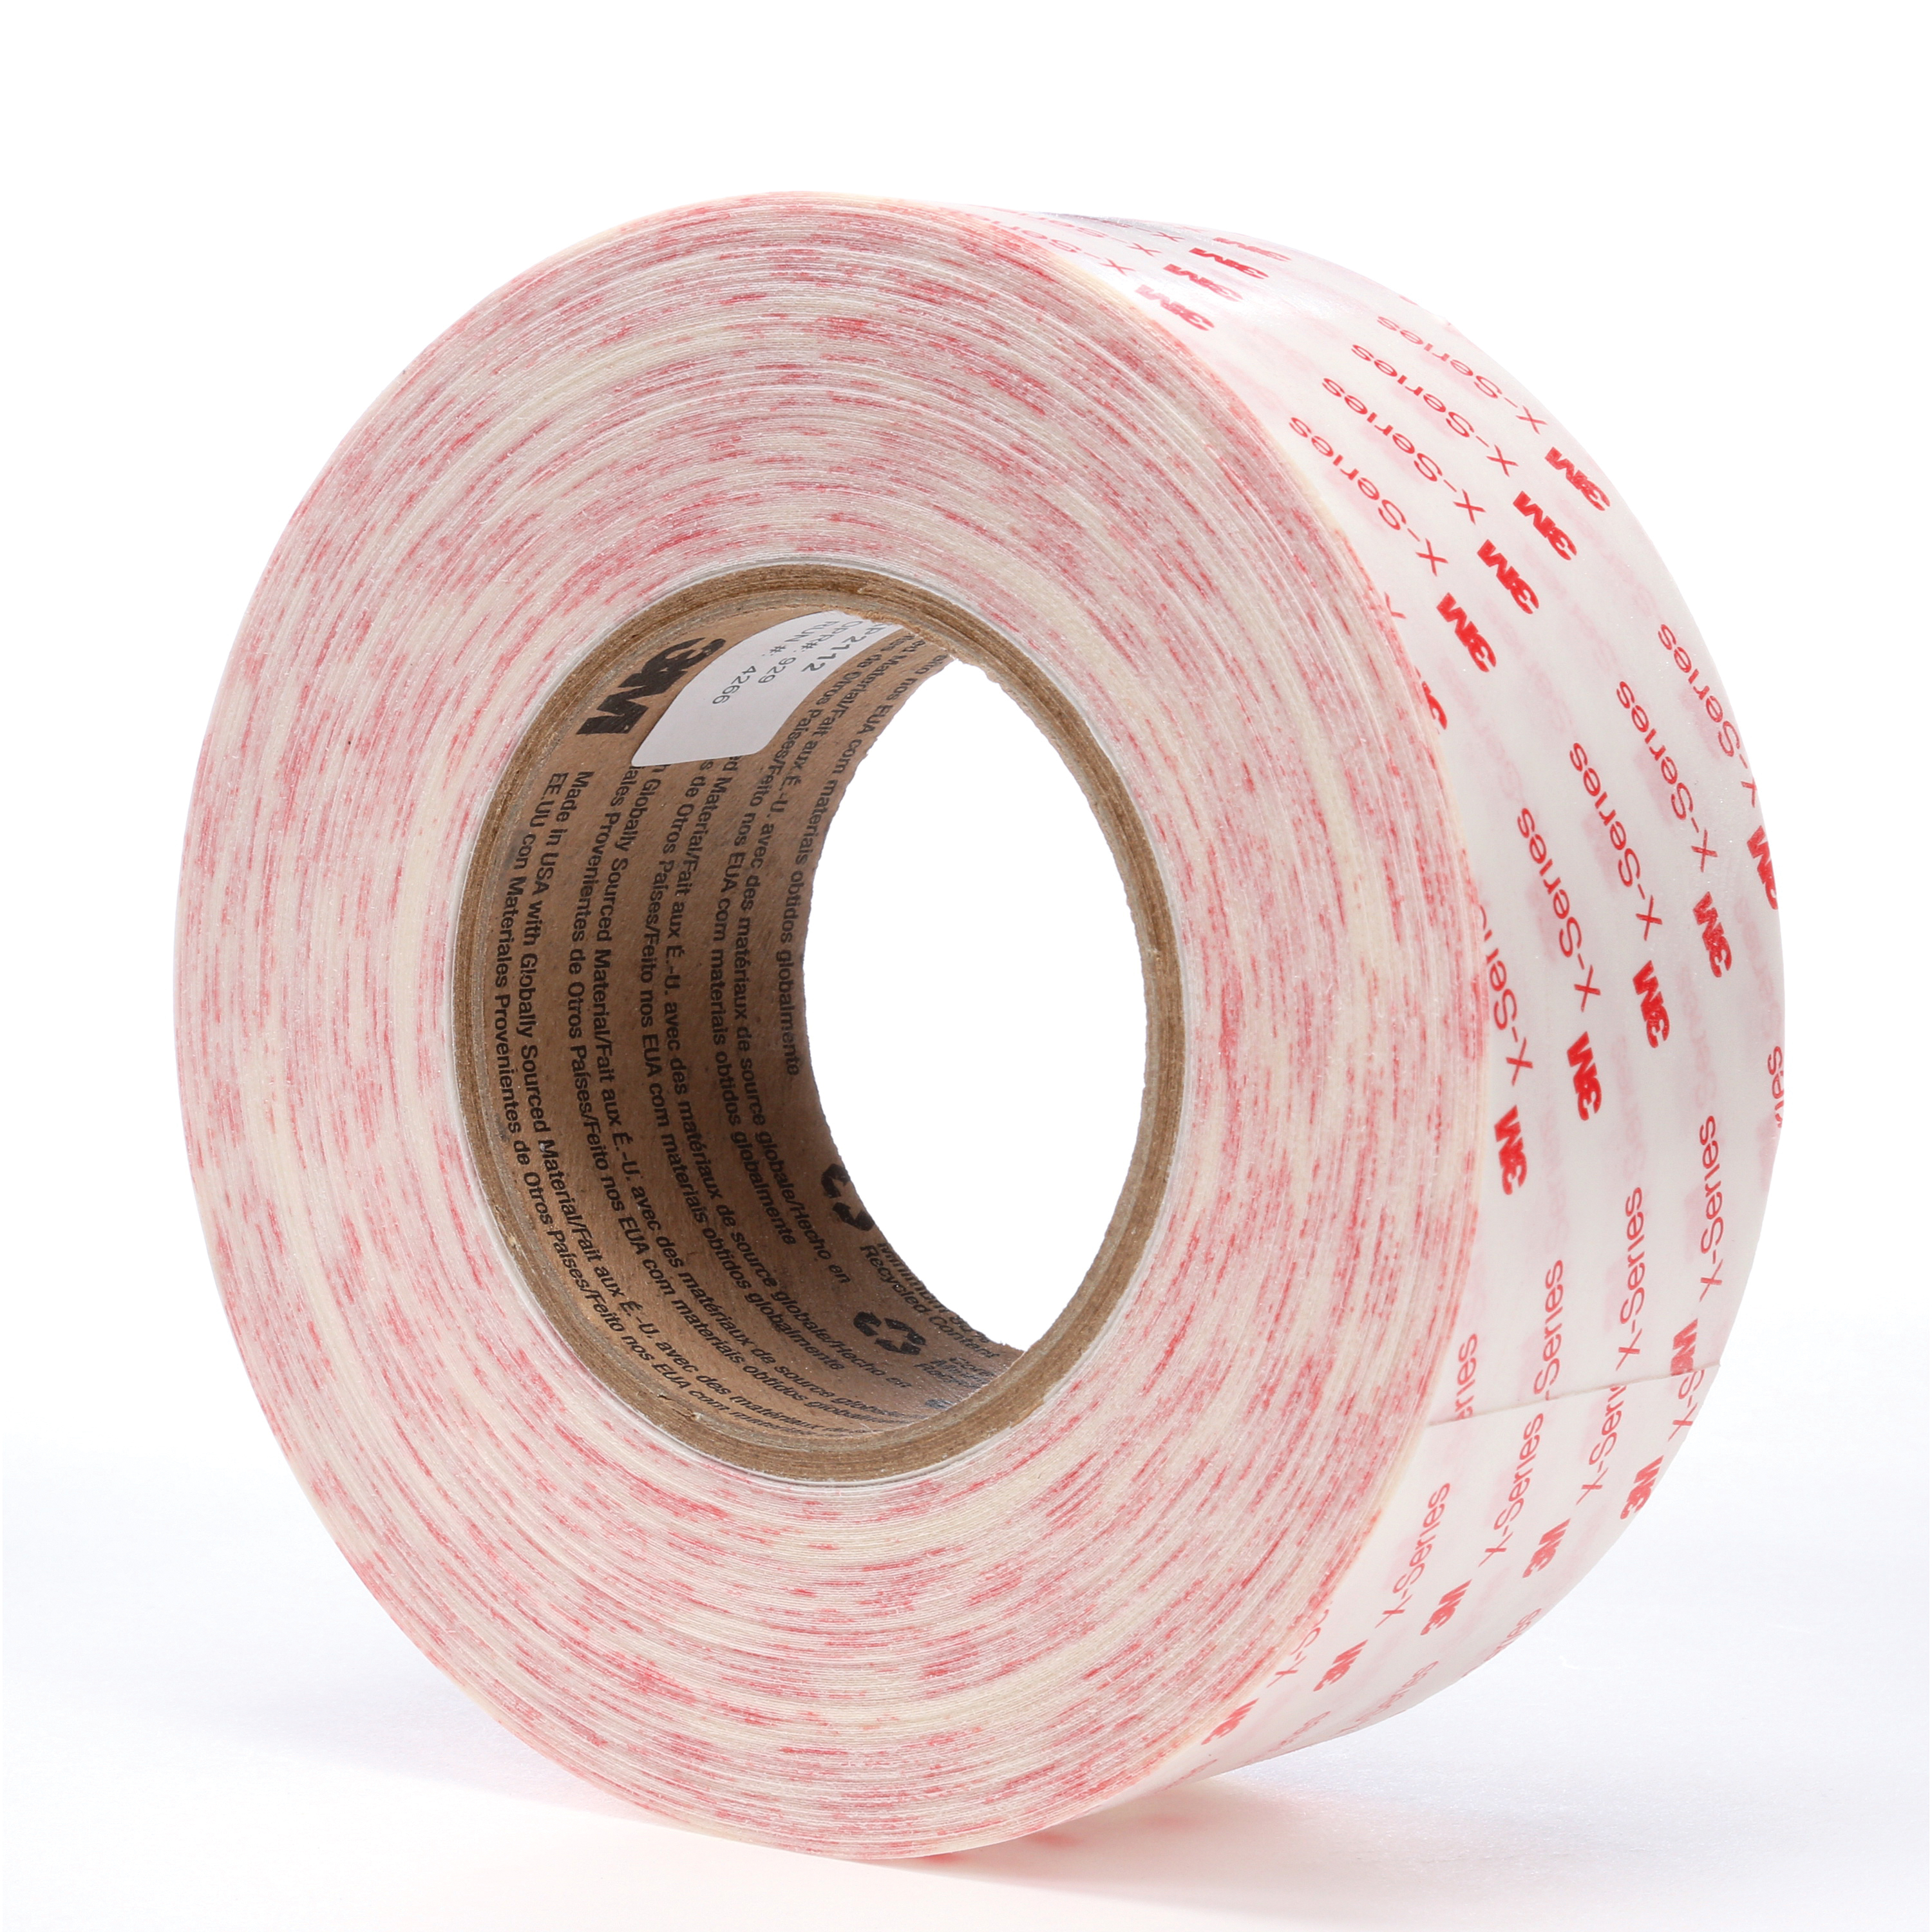 3M™ 051115-63840 X Series High Performance Adhesive Transfer Tape, 60 yd L x 1 in W, 5 mil THK, Acrylic Adhesive, Clear